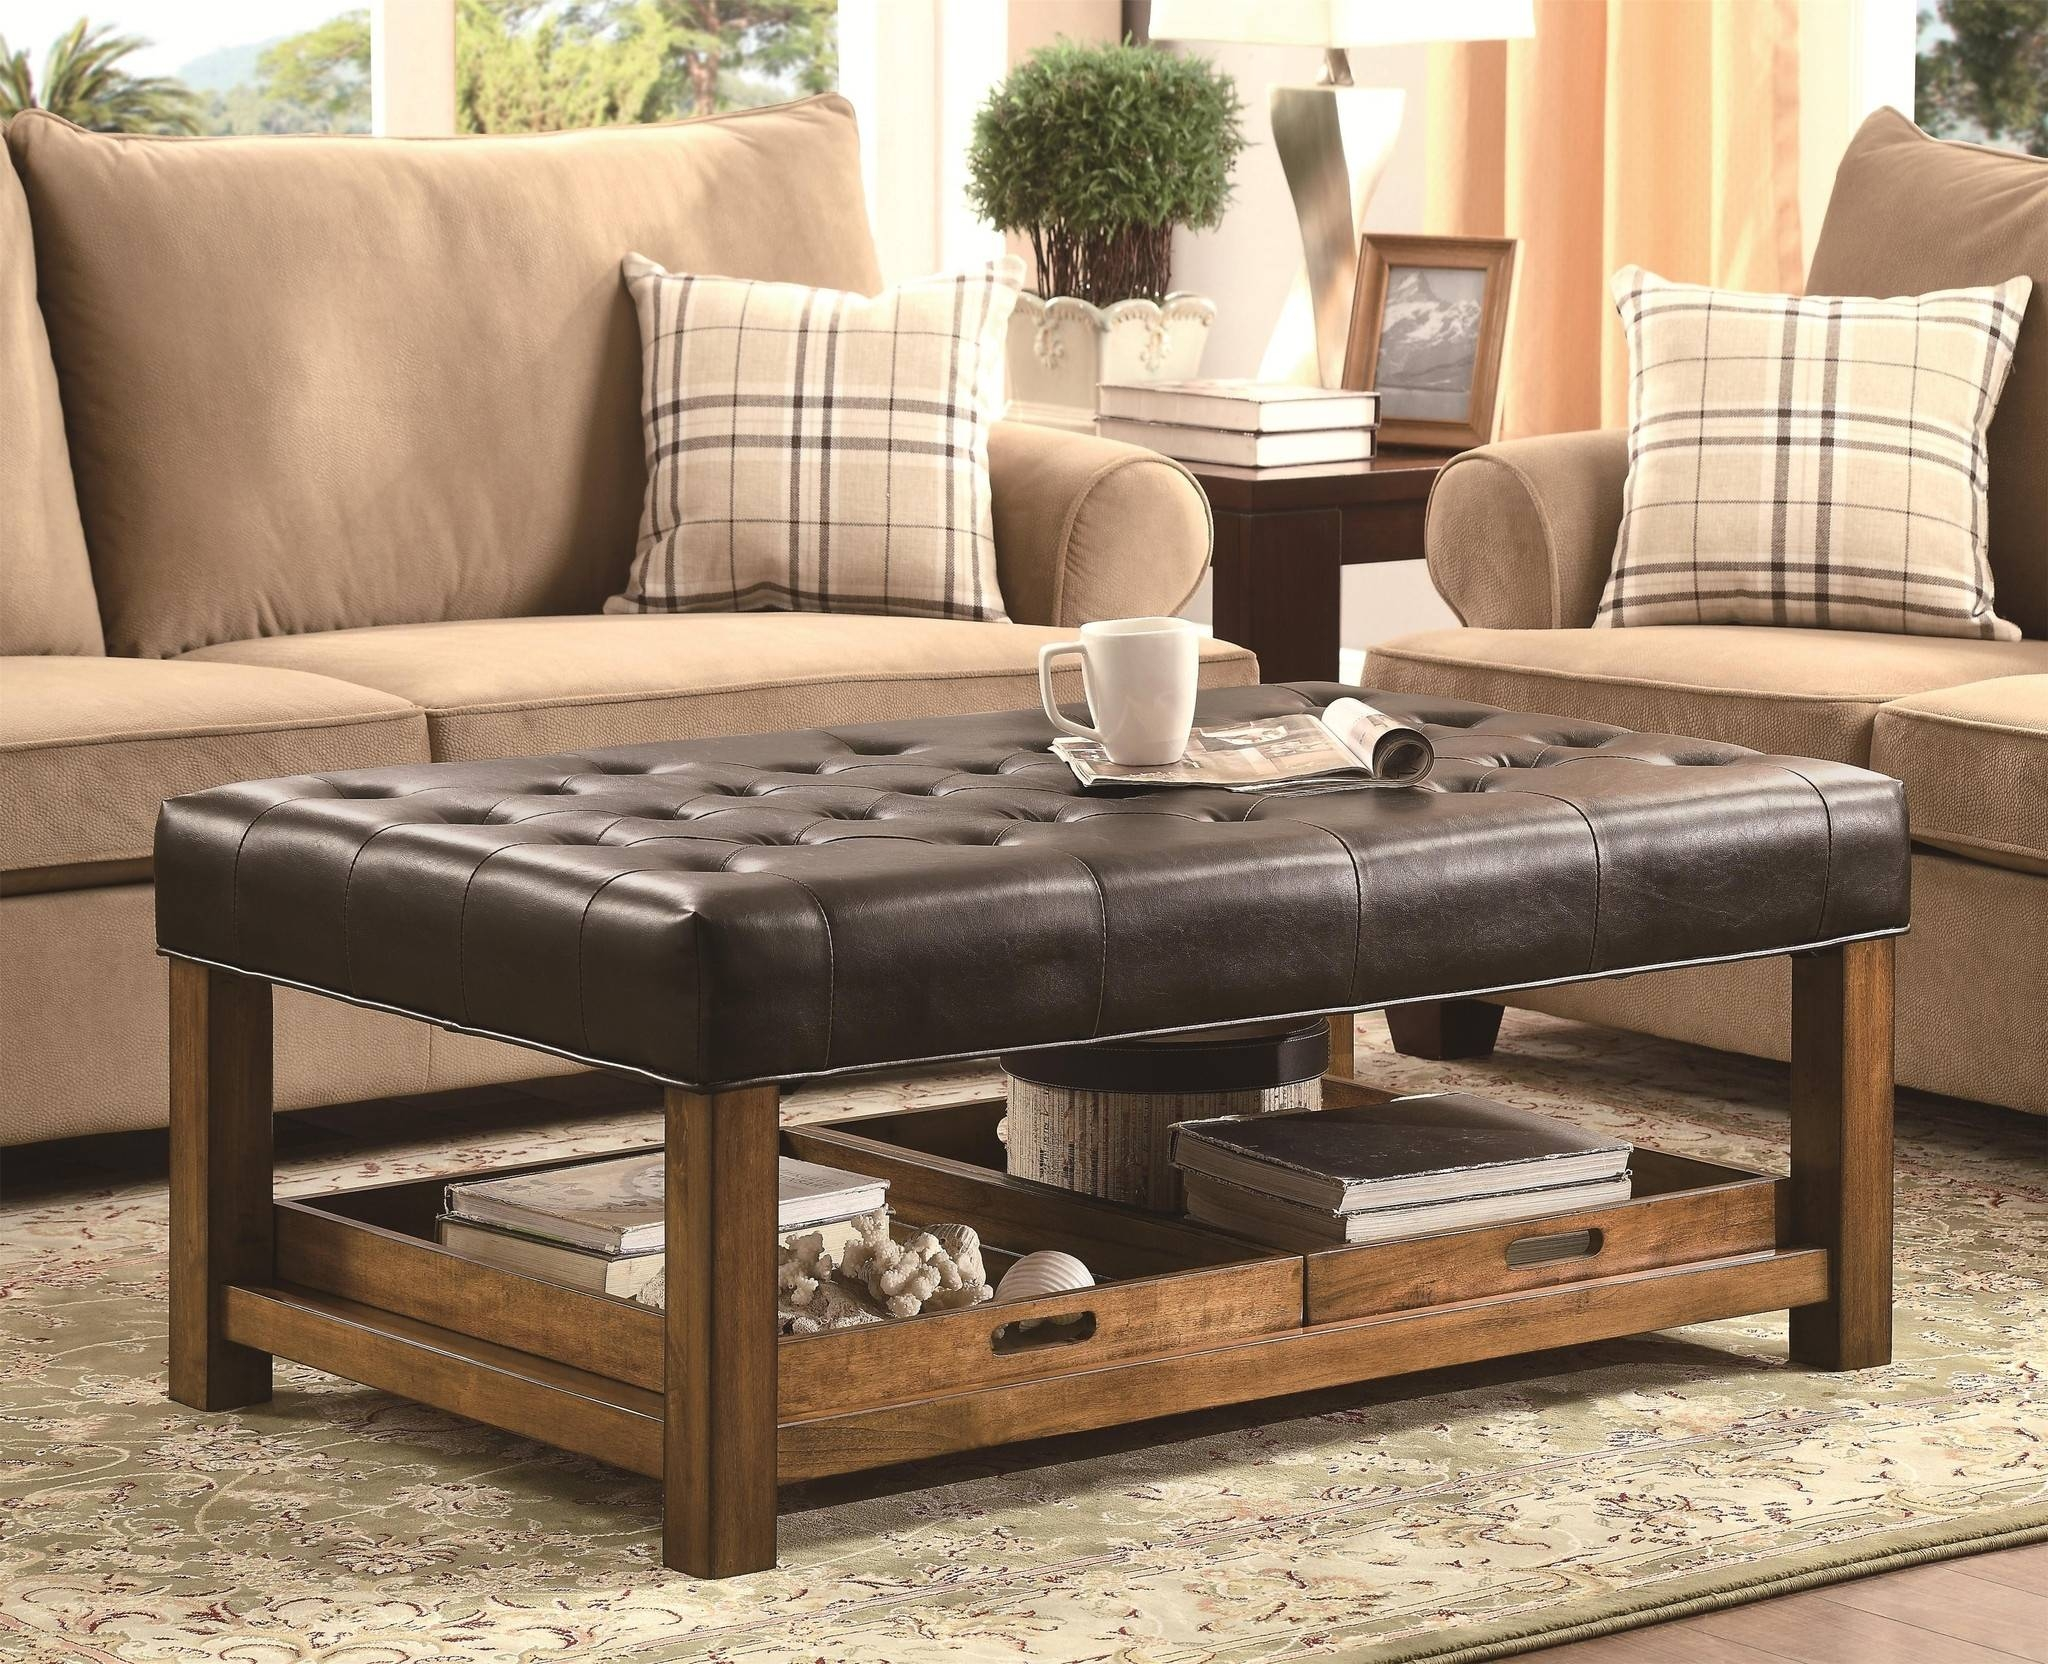 Beautiful Leather Ottoman Coffee Table Furniture For Coffee Table In Brown Leather Ottoman Coffee Tables (View 14 of 30)